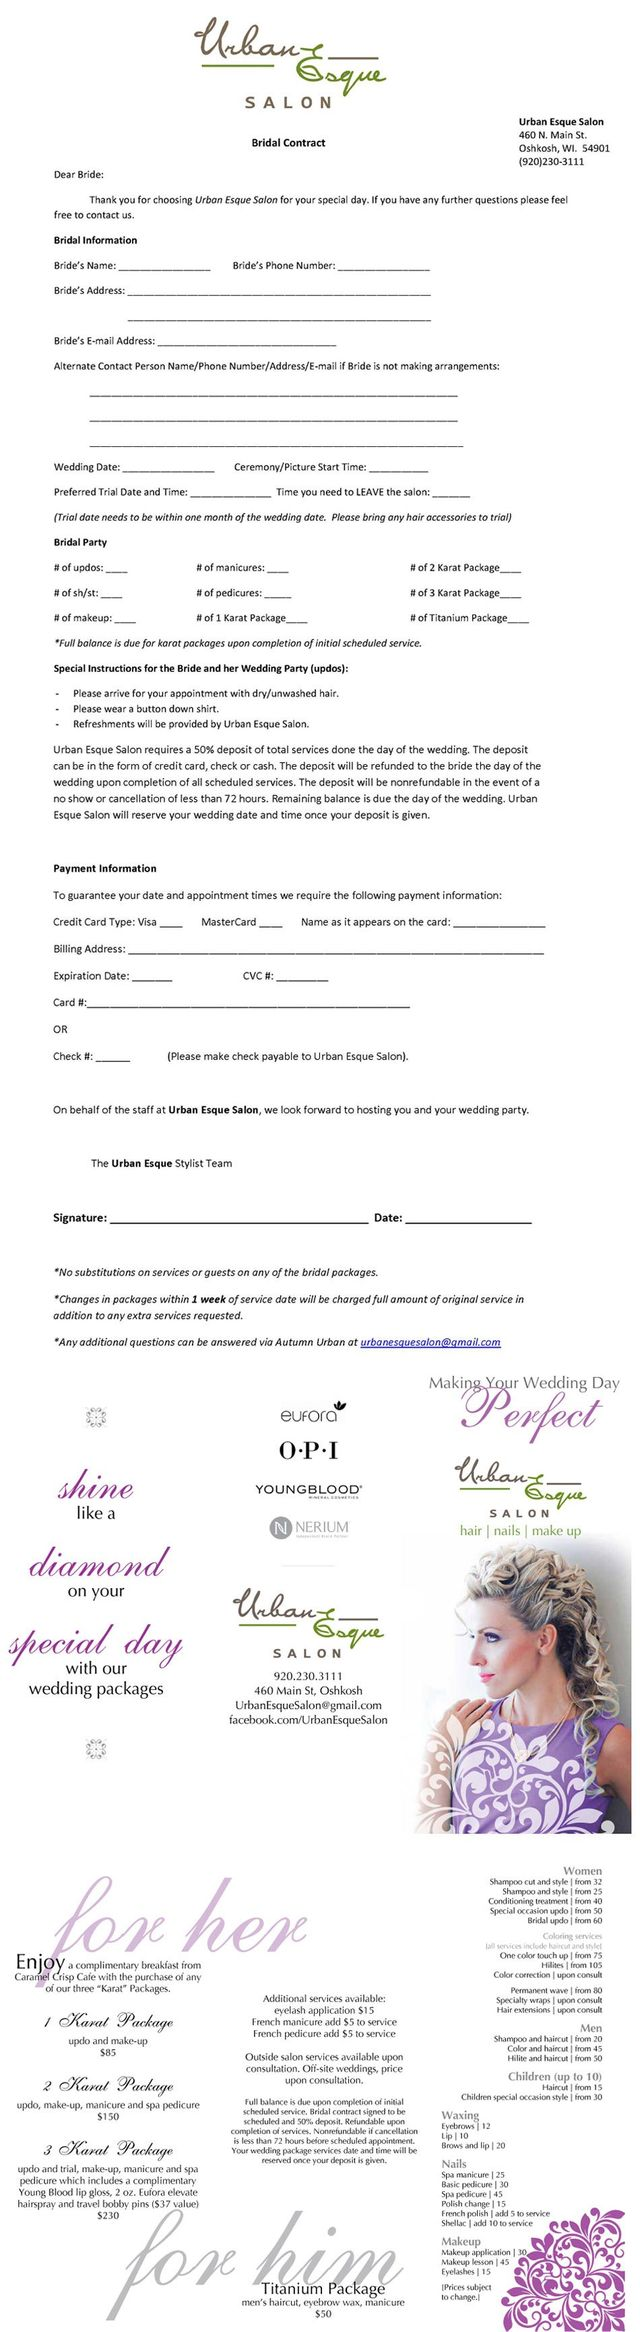 Bridal contract form